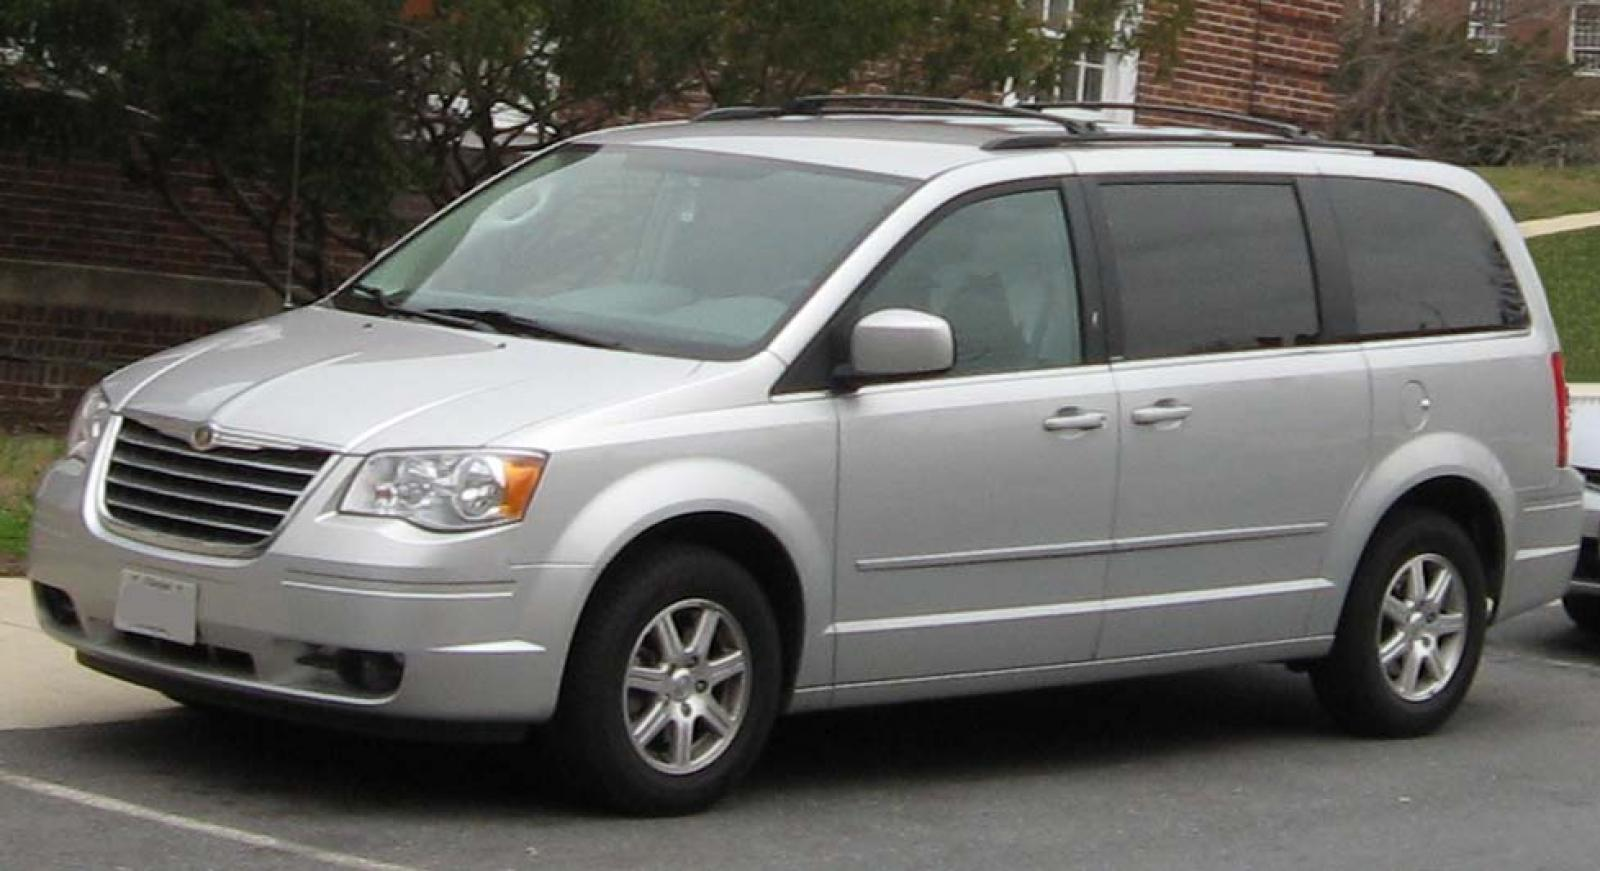 2008 chrysler town and country information and photos zombiedrive. Black Bedroom Furniture Sets. Home Design Ideas